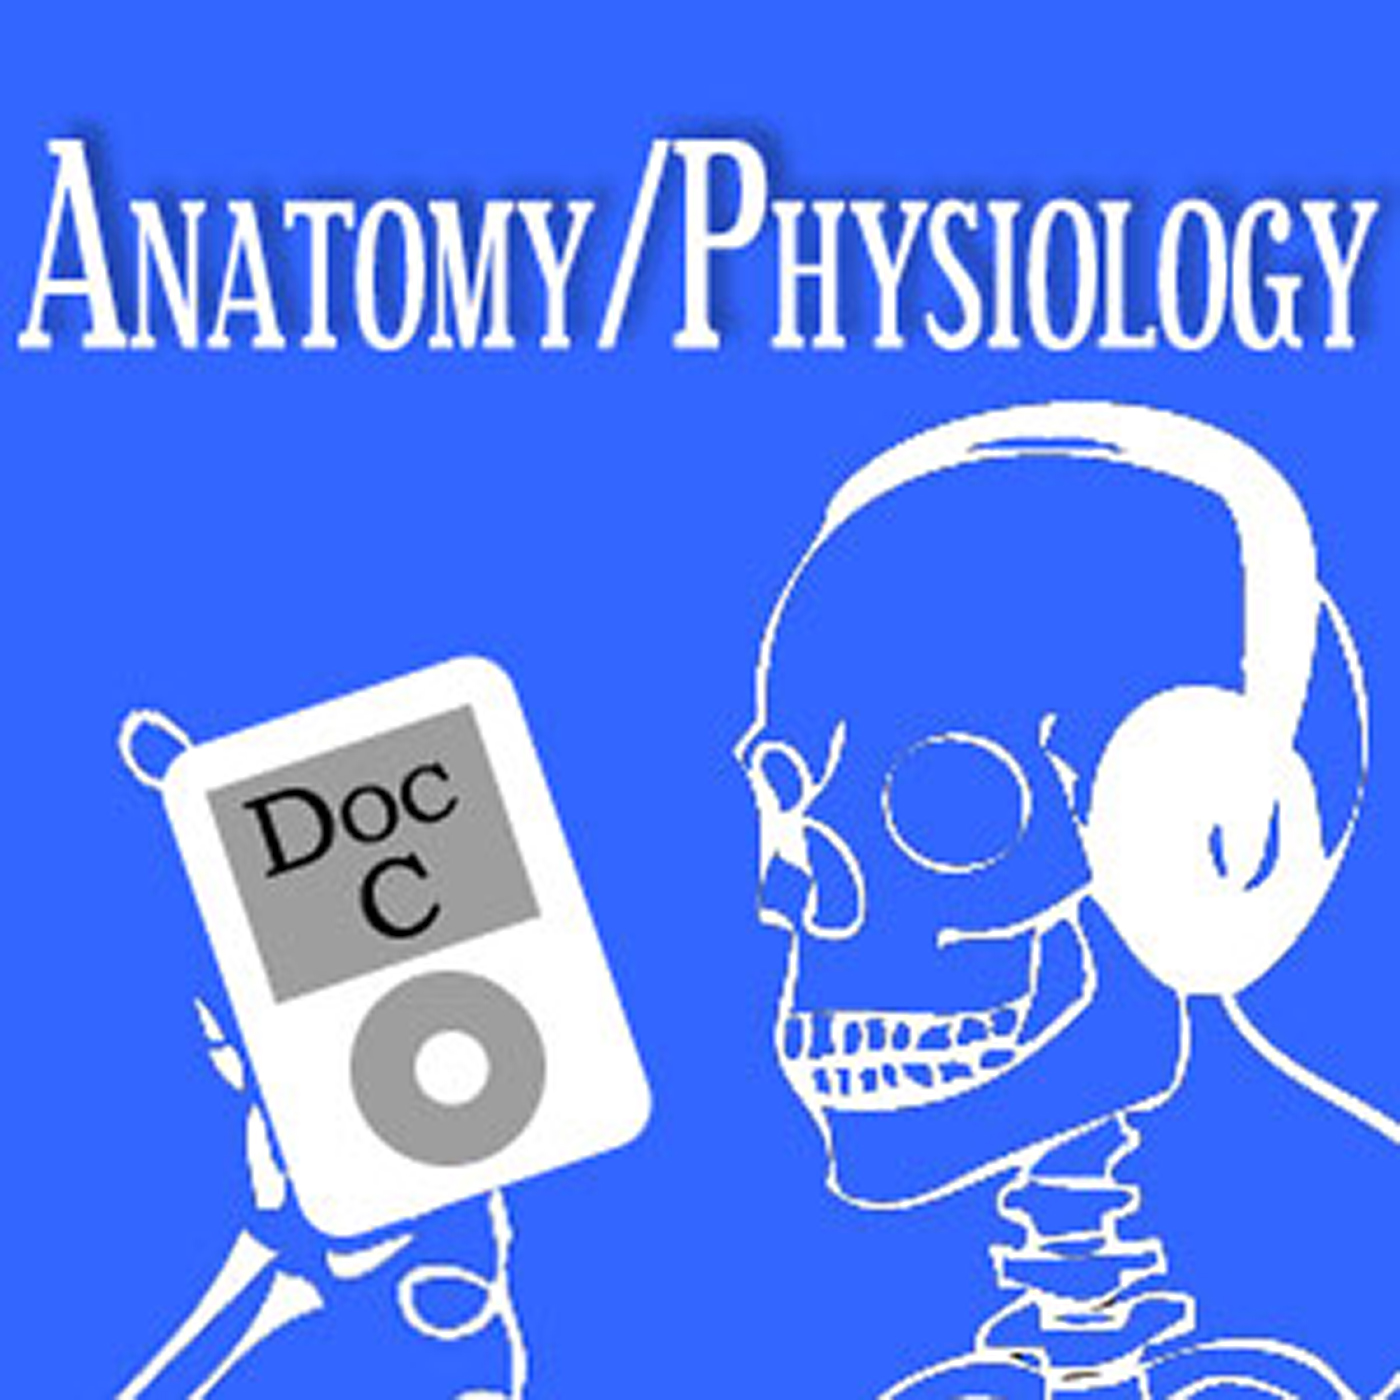 Biology 2110-2120: Anatomy and Physiology with Doc C Podcast | Free ...